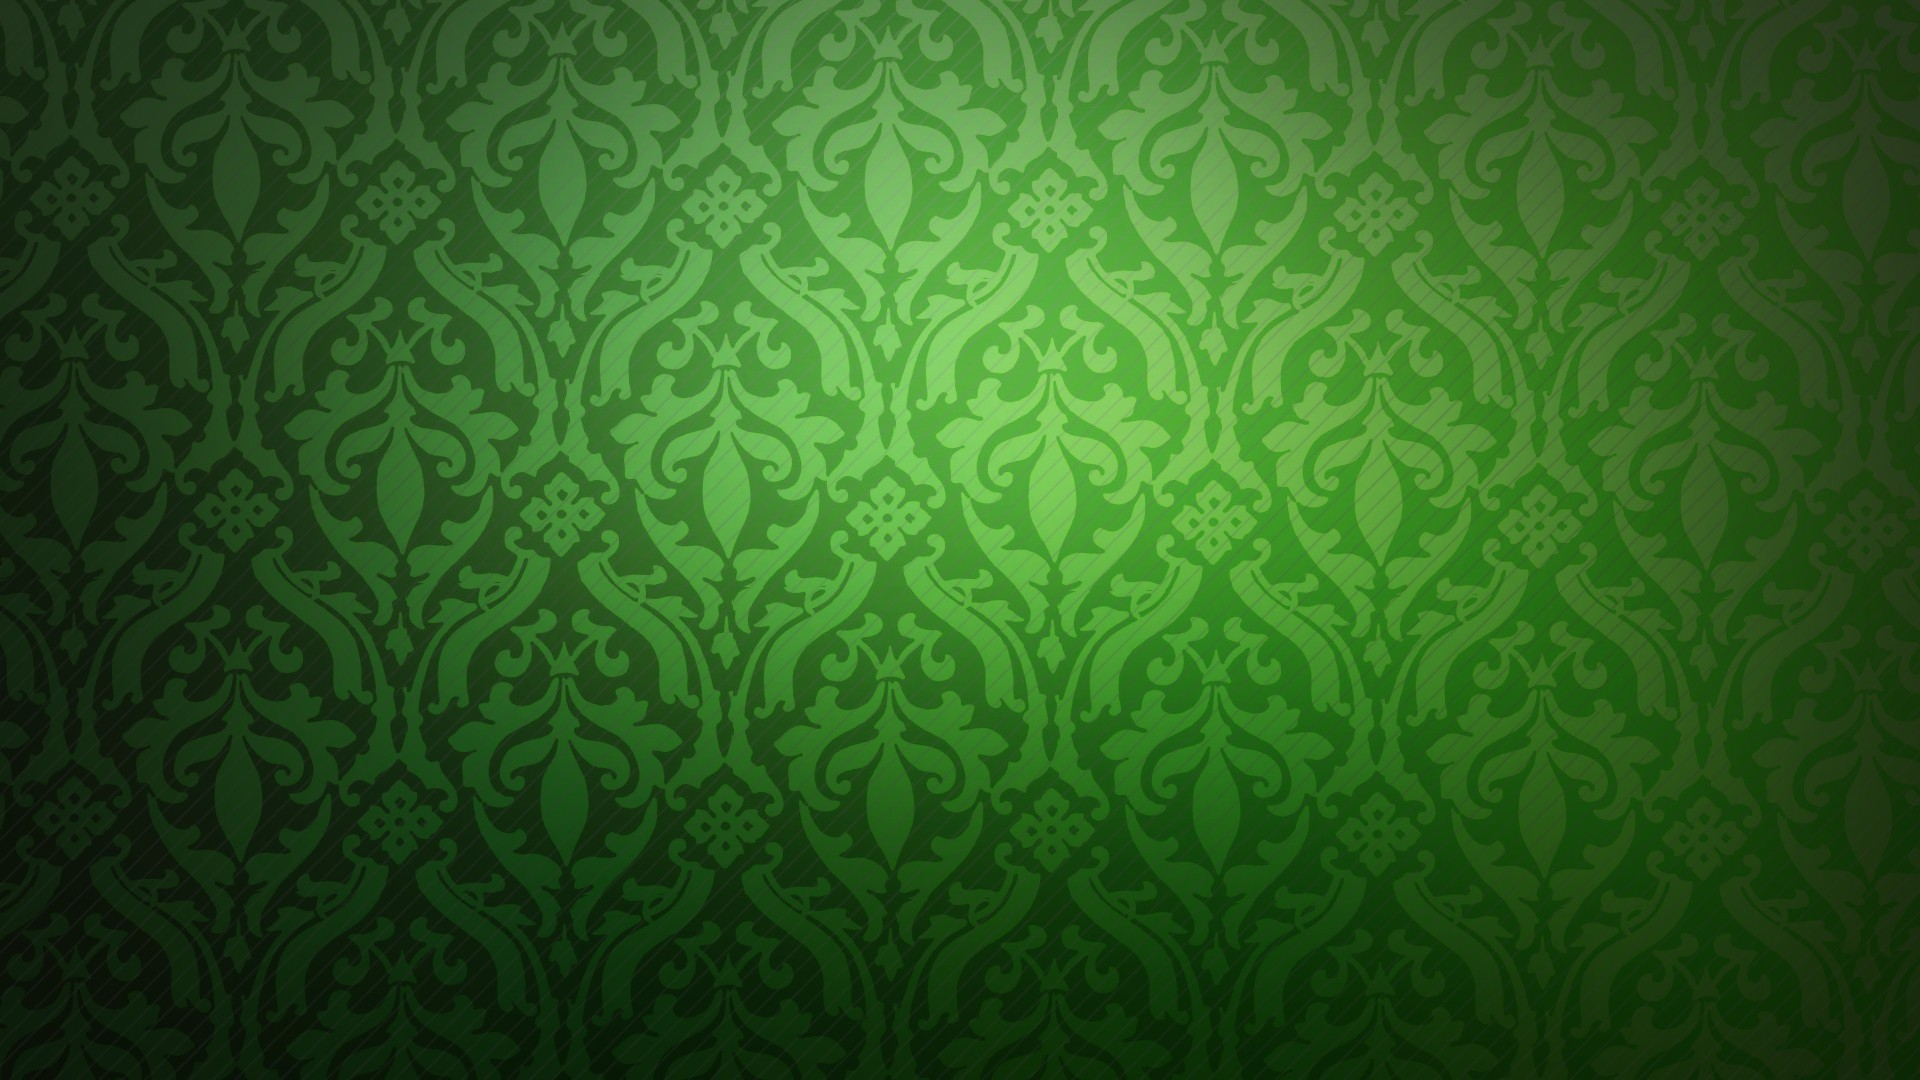 1920x1080 Green, Vintage, Pattern, Abstract, Hd, Wallpaper, X, , Free, Cool,  Landscape, 1920×1080 Wallpaper HD